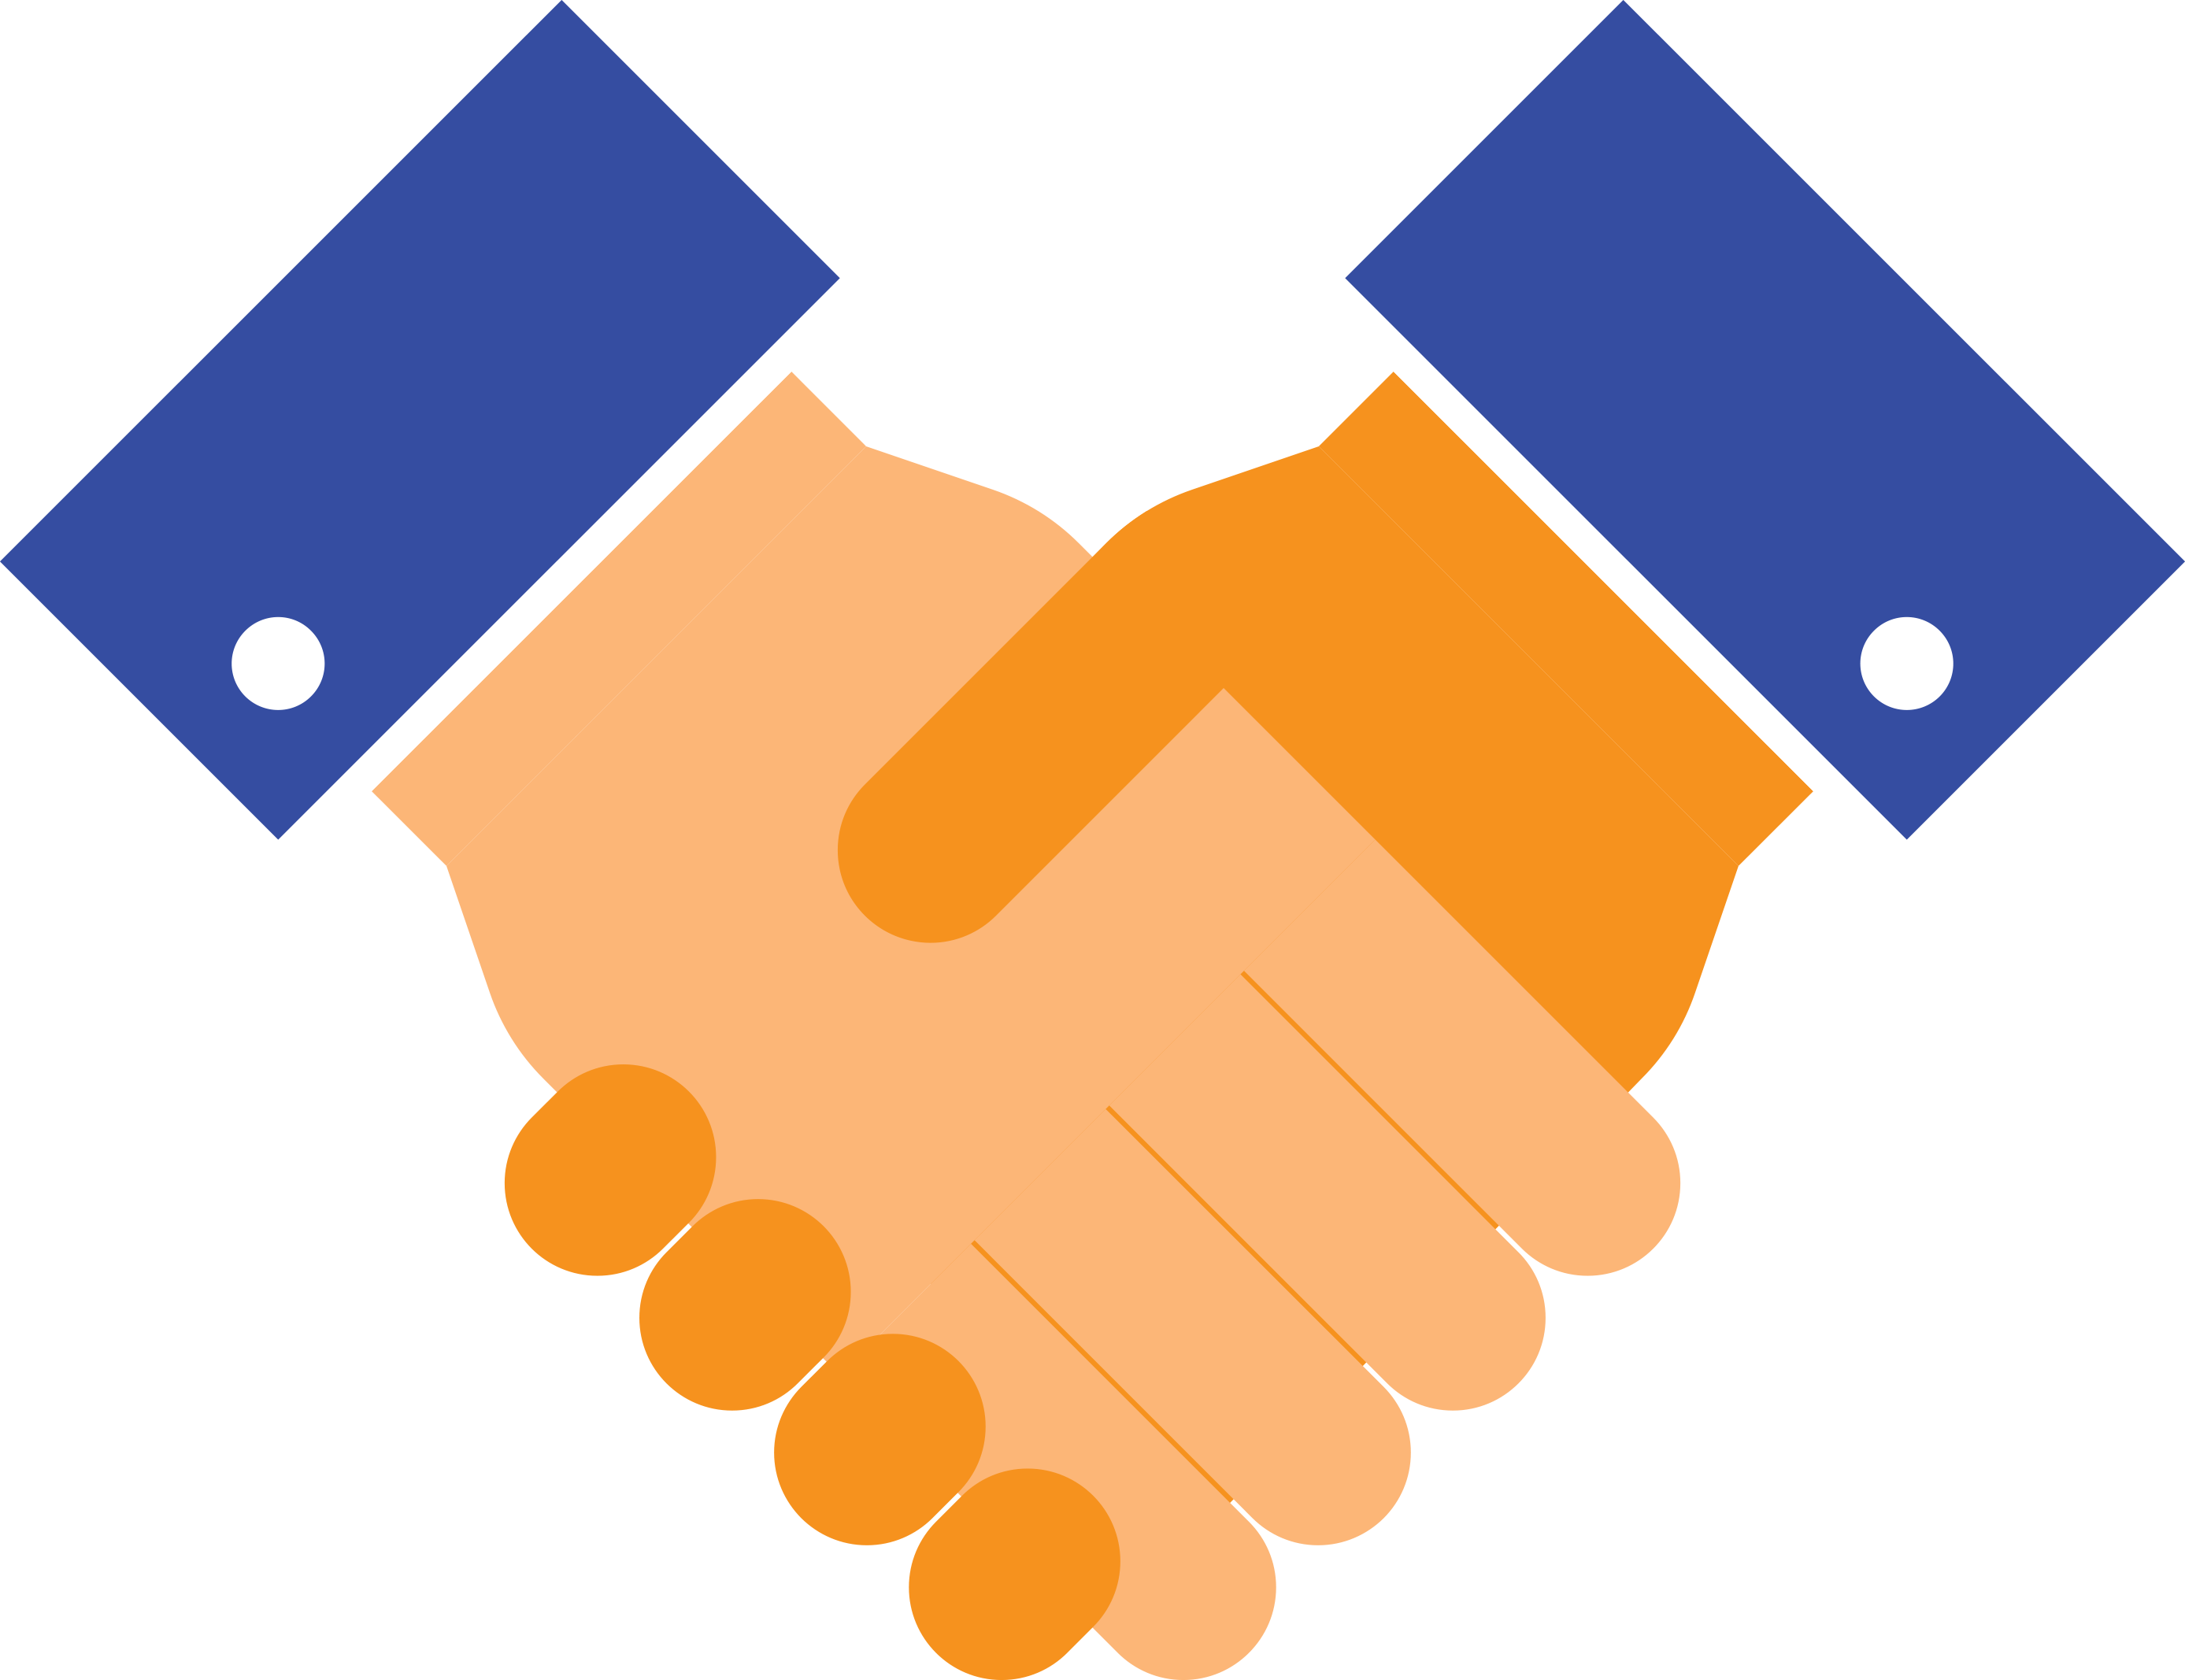 2775x2134 Handshake Clipart, Suggestions For Handshake Clipart, Download